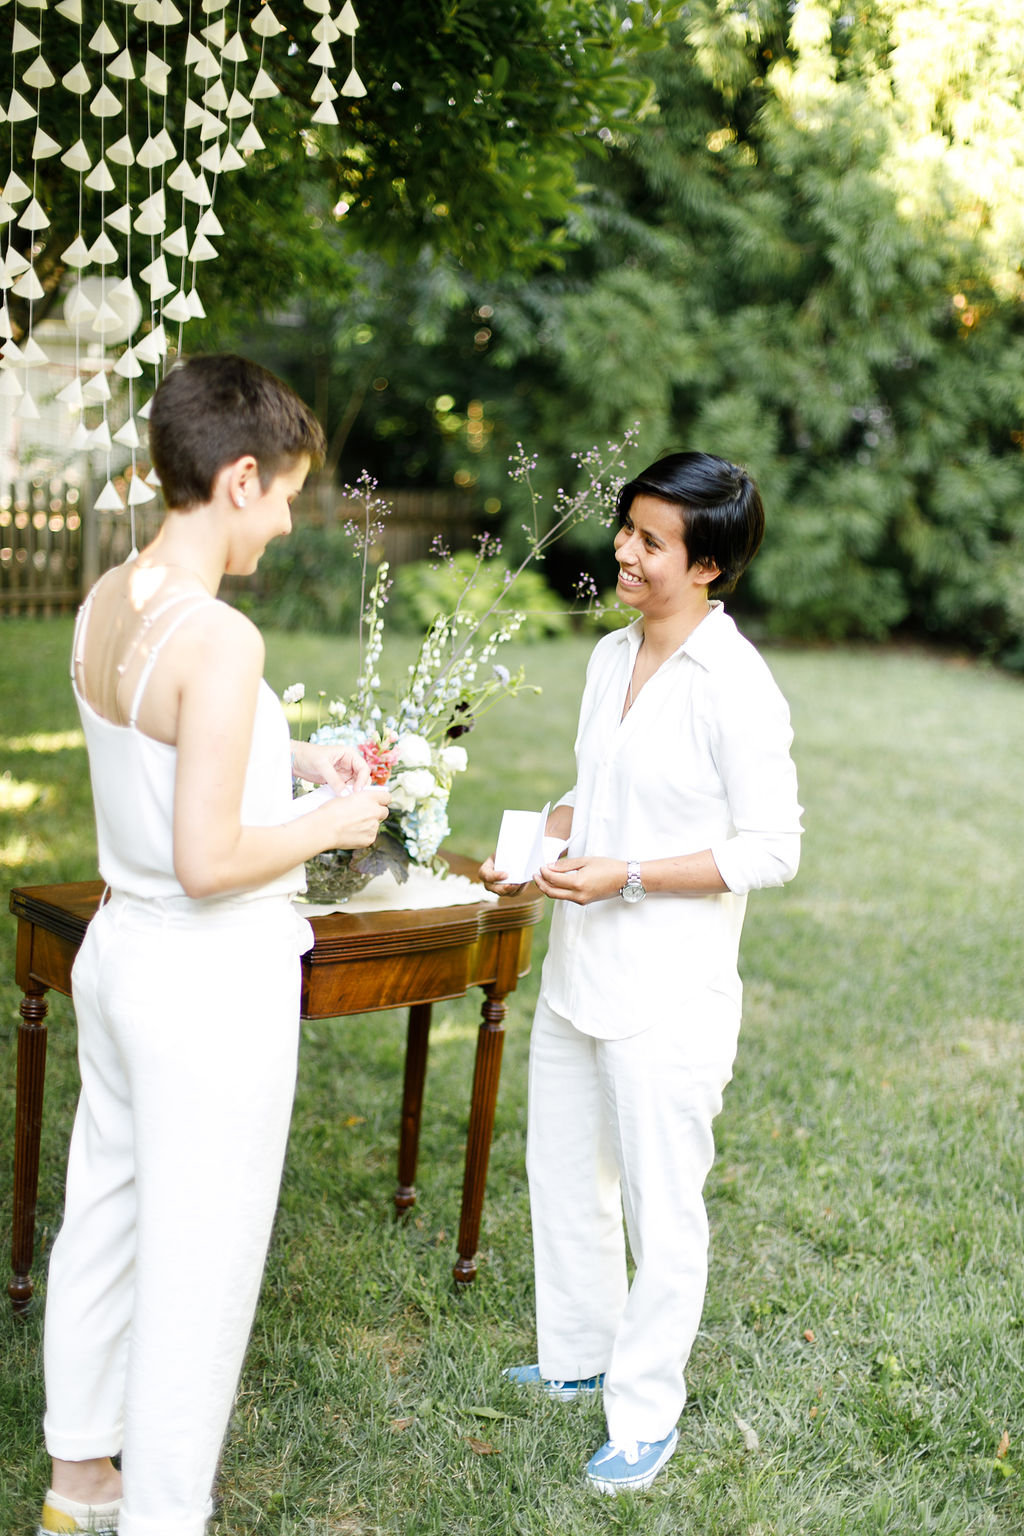 Philly Area Backyard LGBTQ Micro Wedding 34.jpg